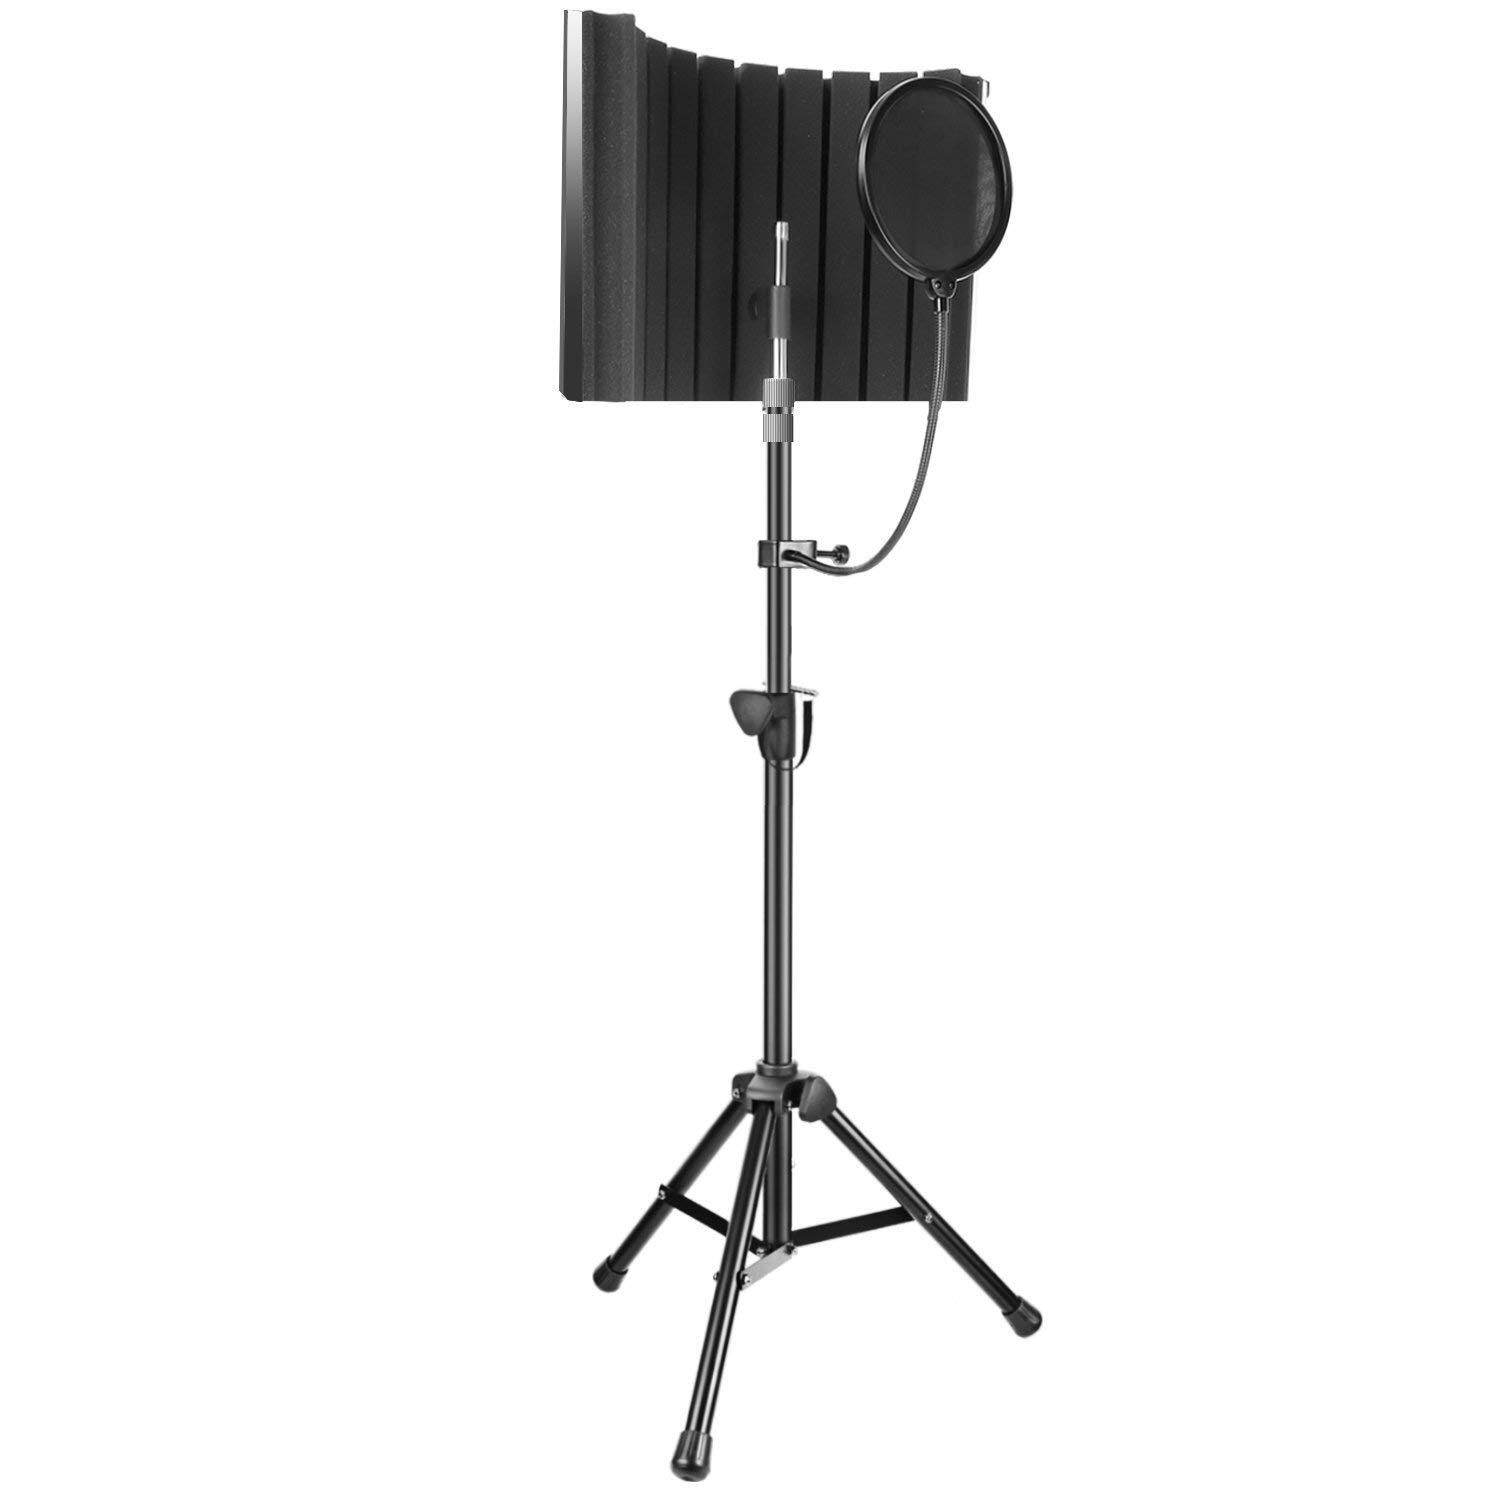 Neewer Professional Microphone Studio Recording Accessories Include: Nw-8 Mic Isolation Shield, Adjustable Wind Screen Bracket Stand And Pop Filter For Vocal Acoustic Recording And Podcasting By Cessna.